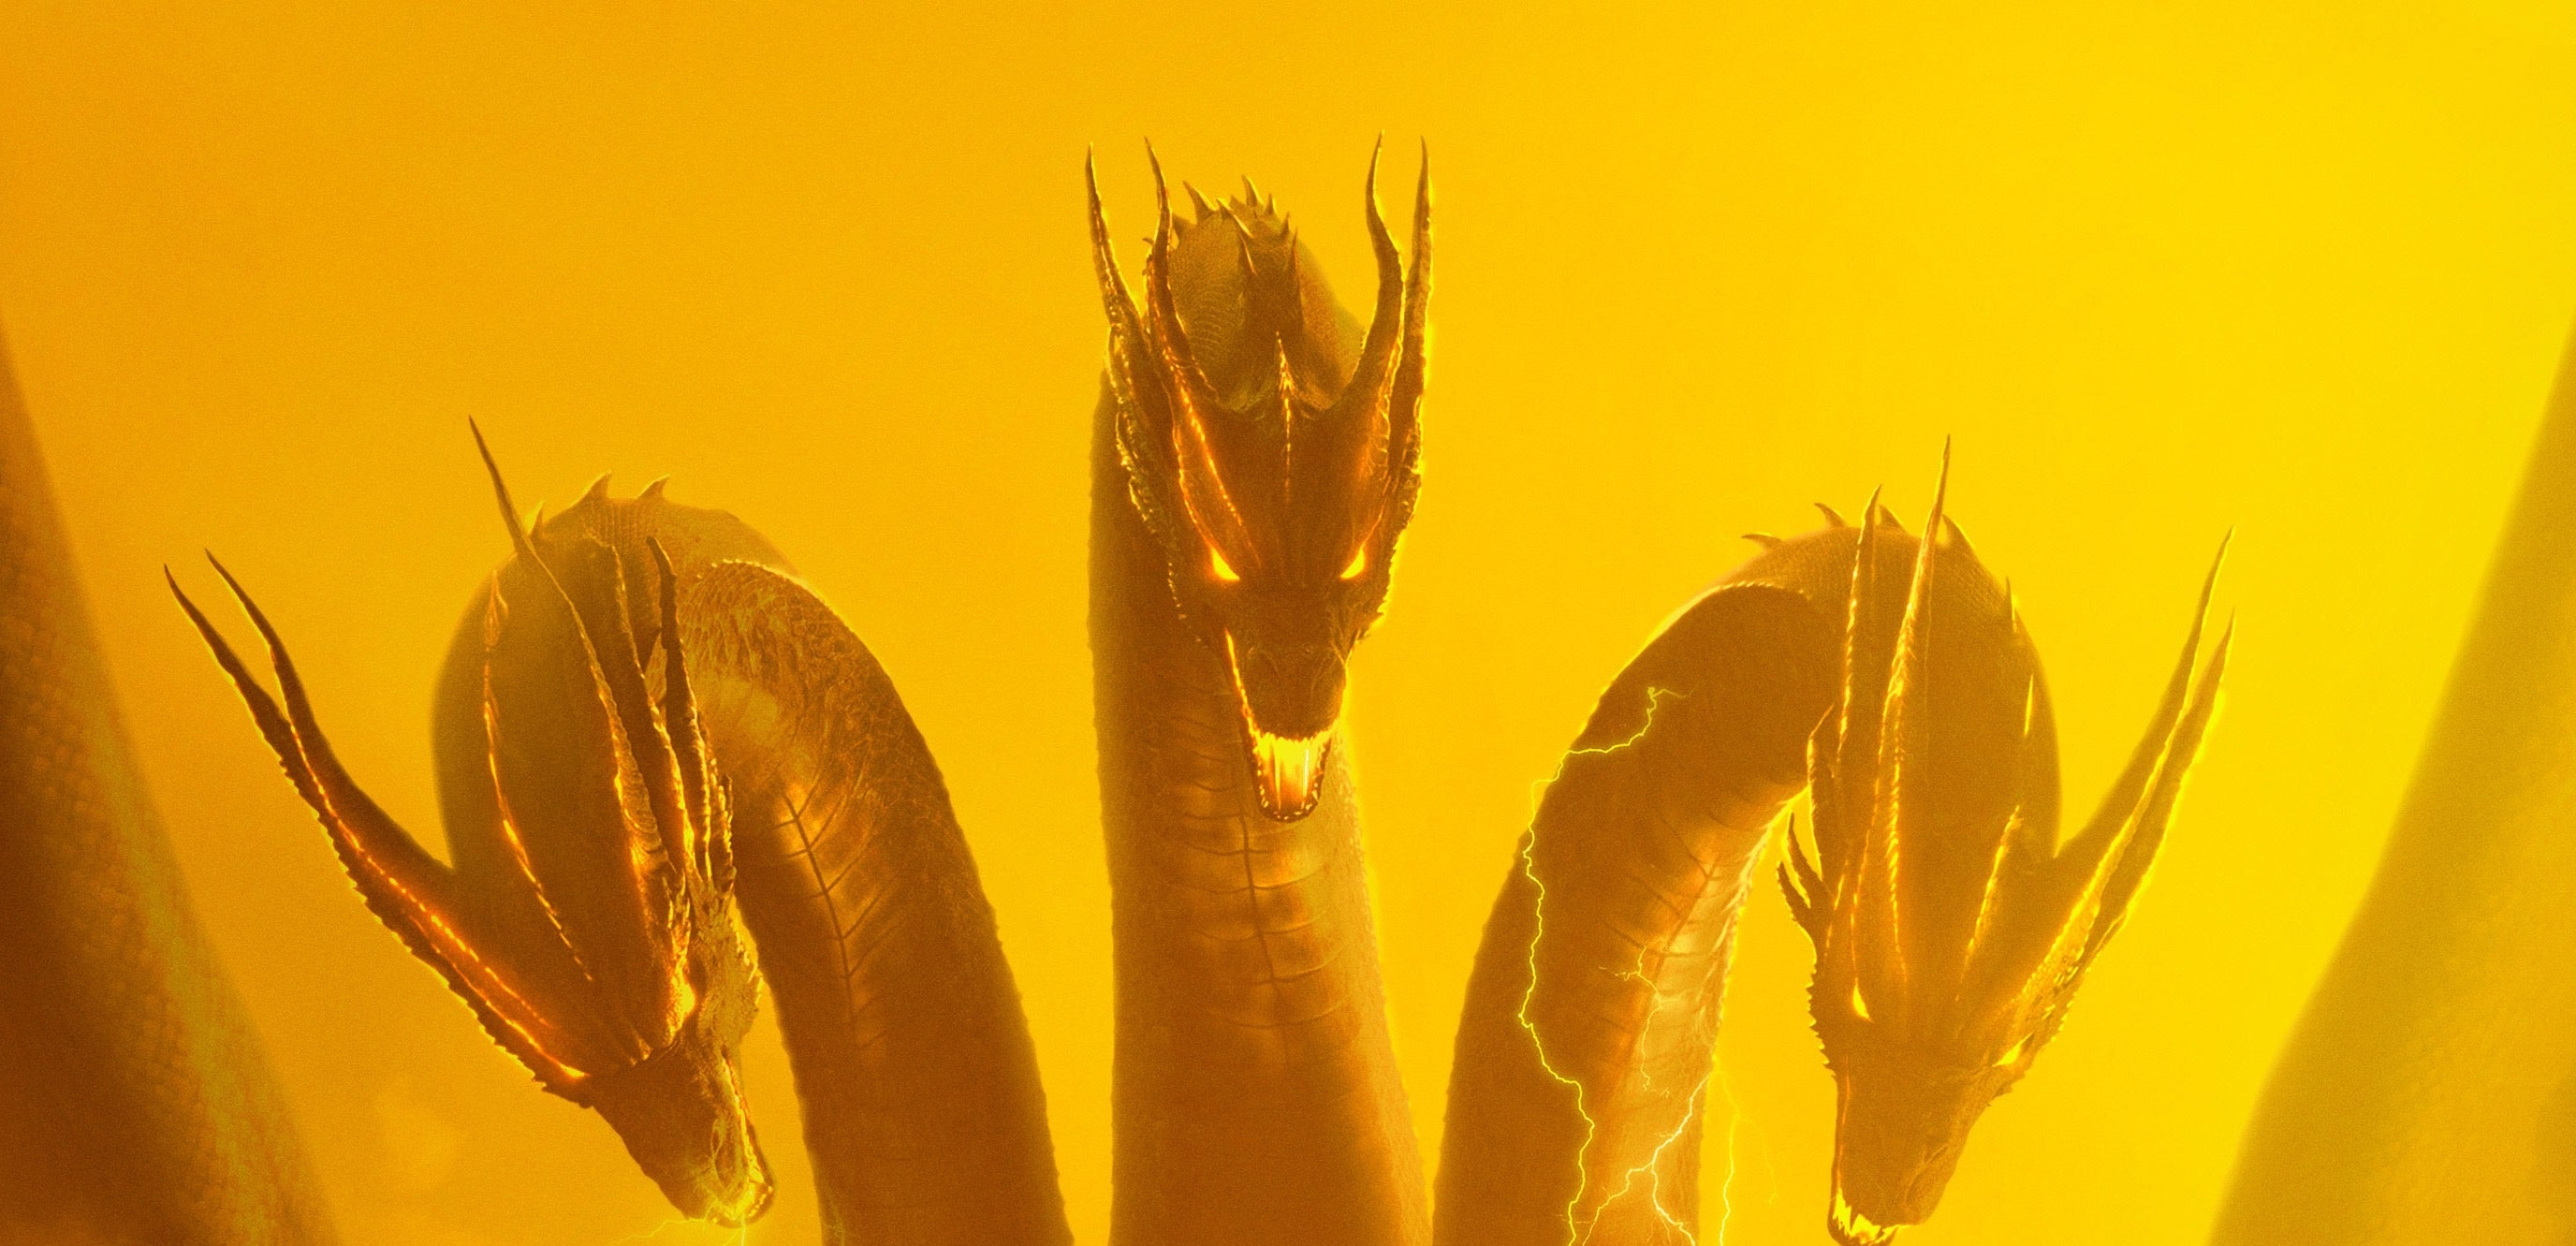 Godzilla's Kaiju Cohorts Grab The Spotlight On These Killer New King Of The Monsters Posters